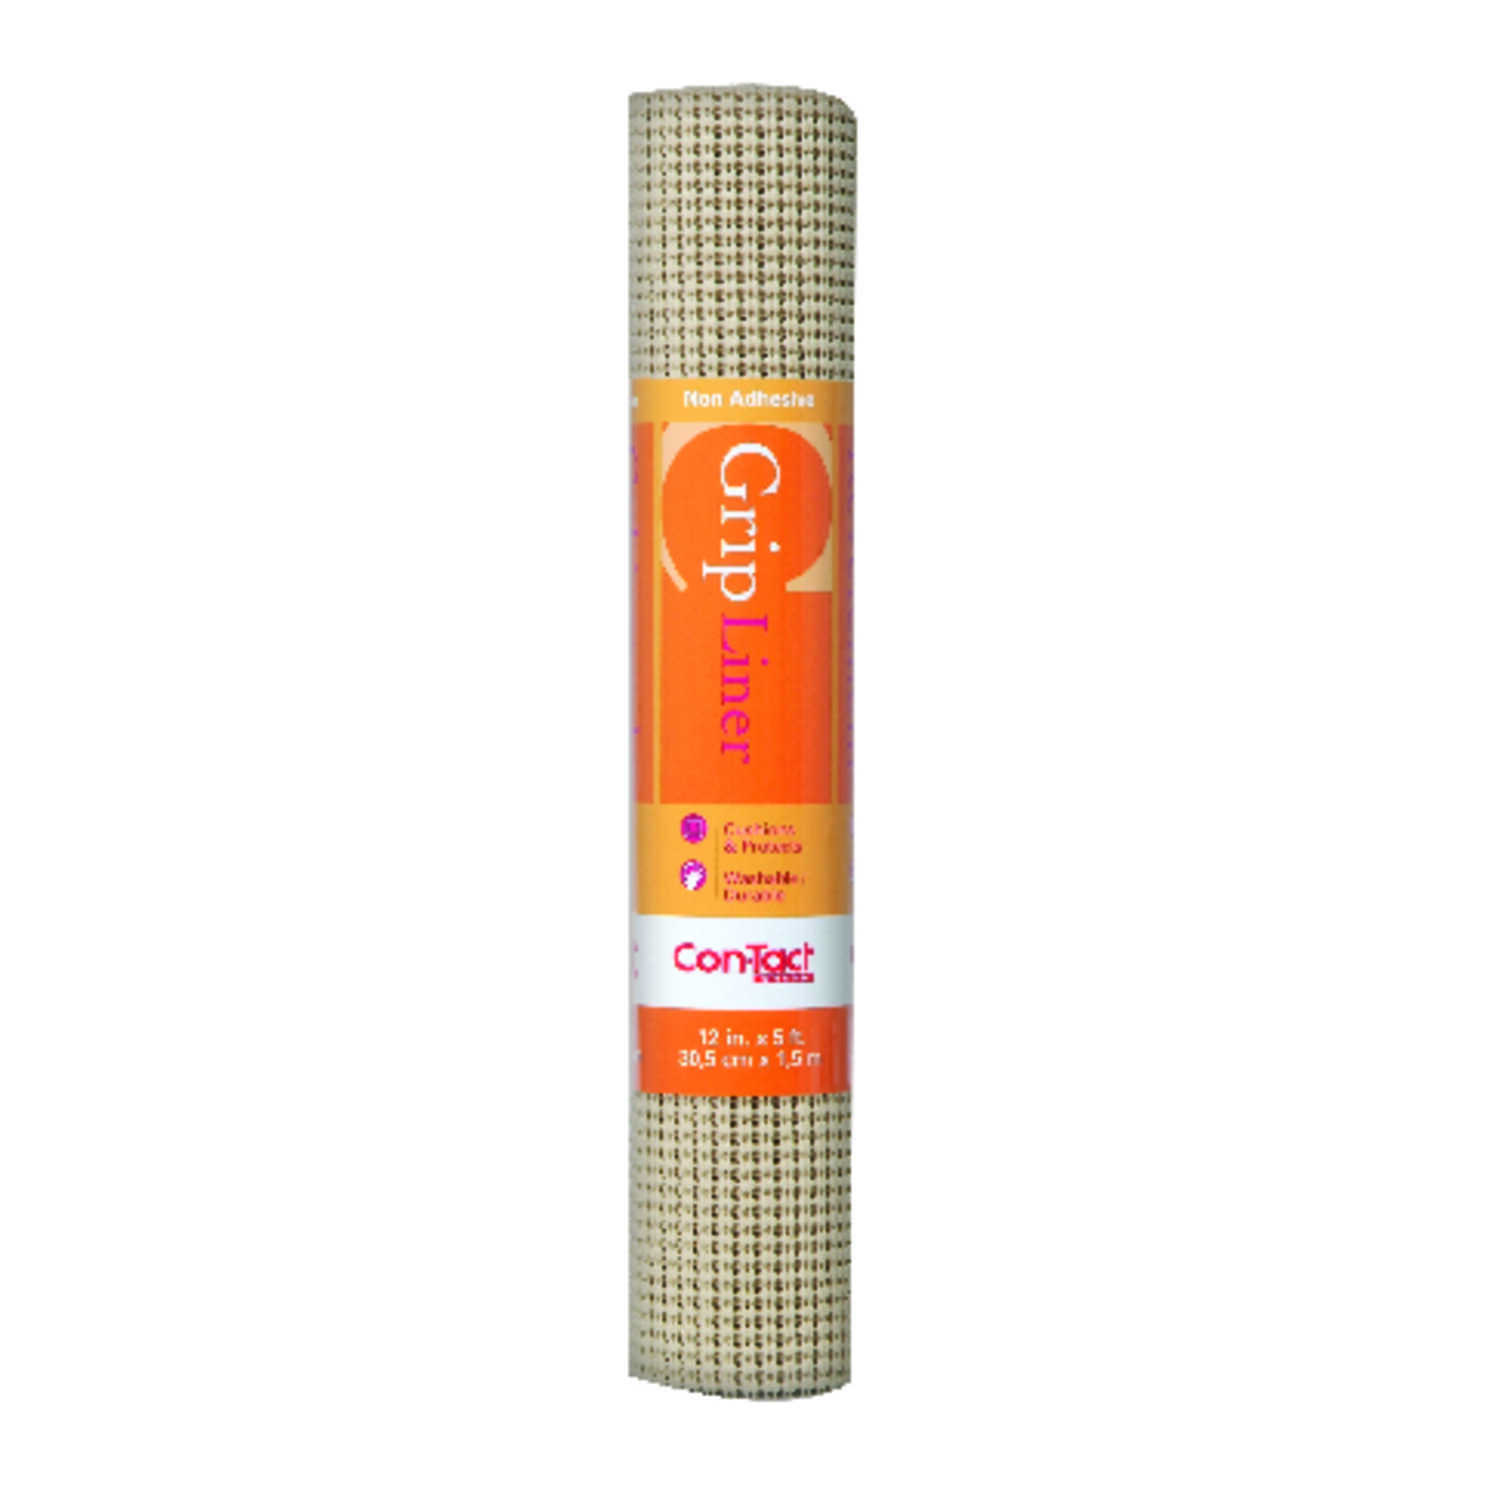 Con-Tact  Grip  5 ft. L x 12 in. W Taupe  Non-Adhesive  Beaded Liner